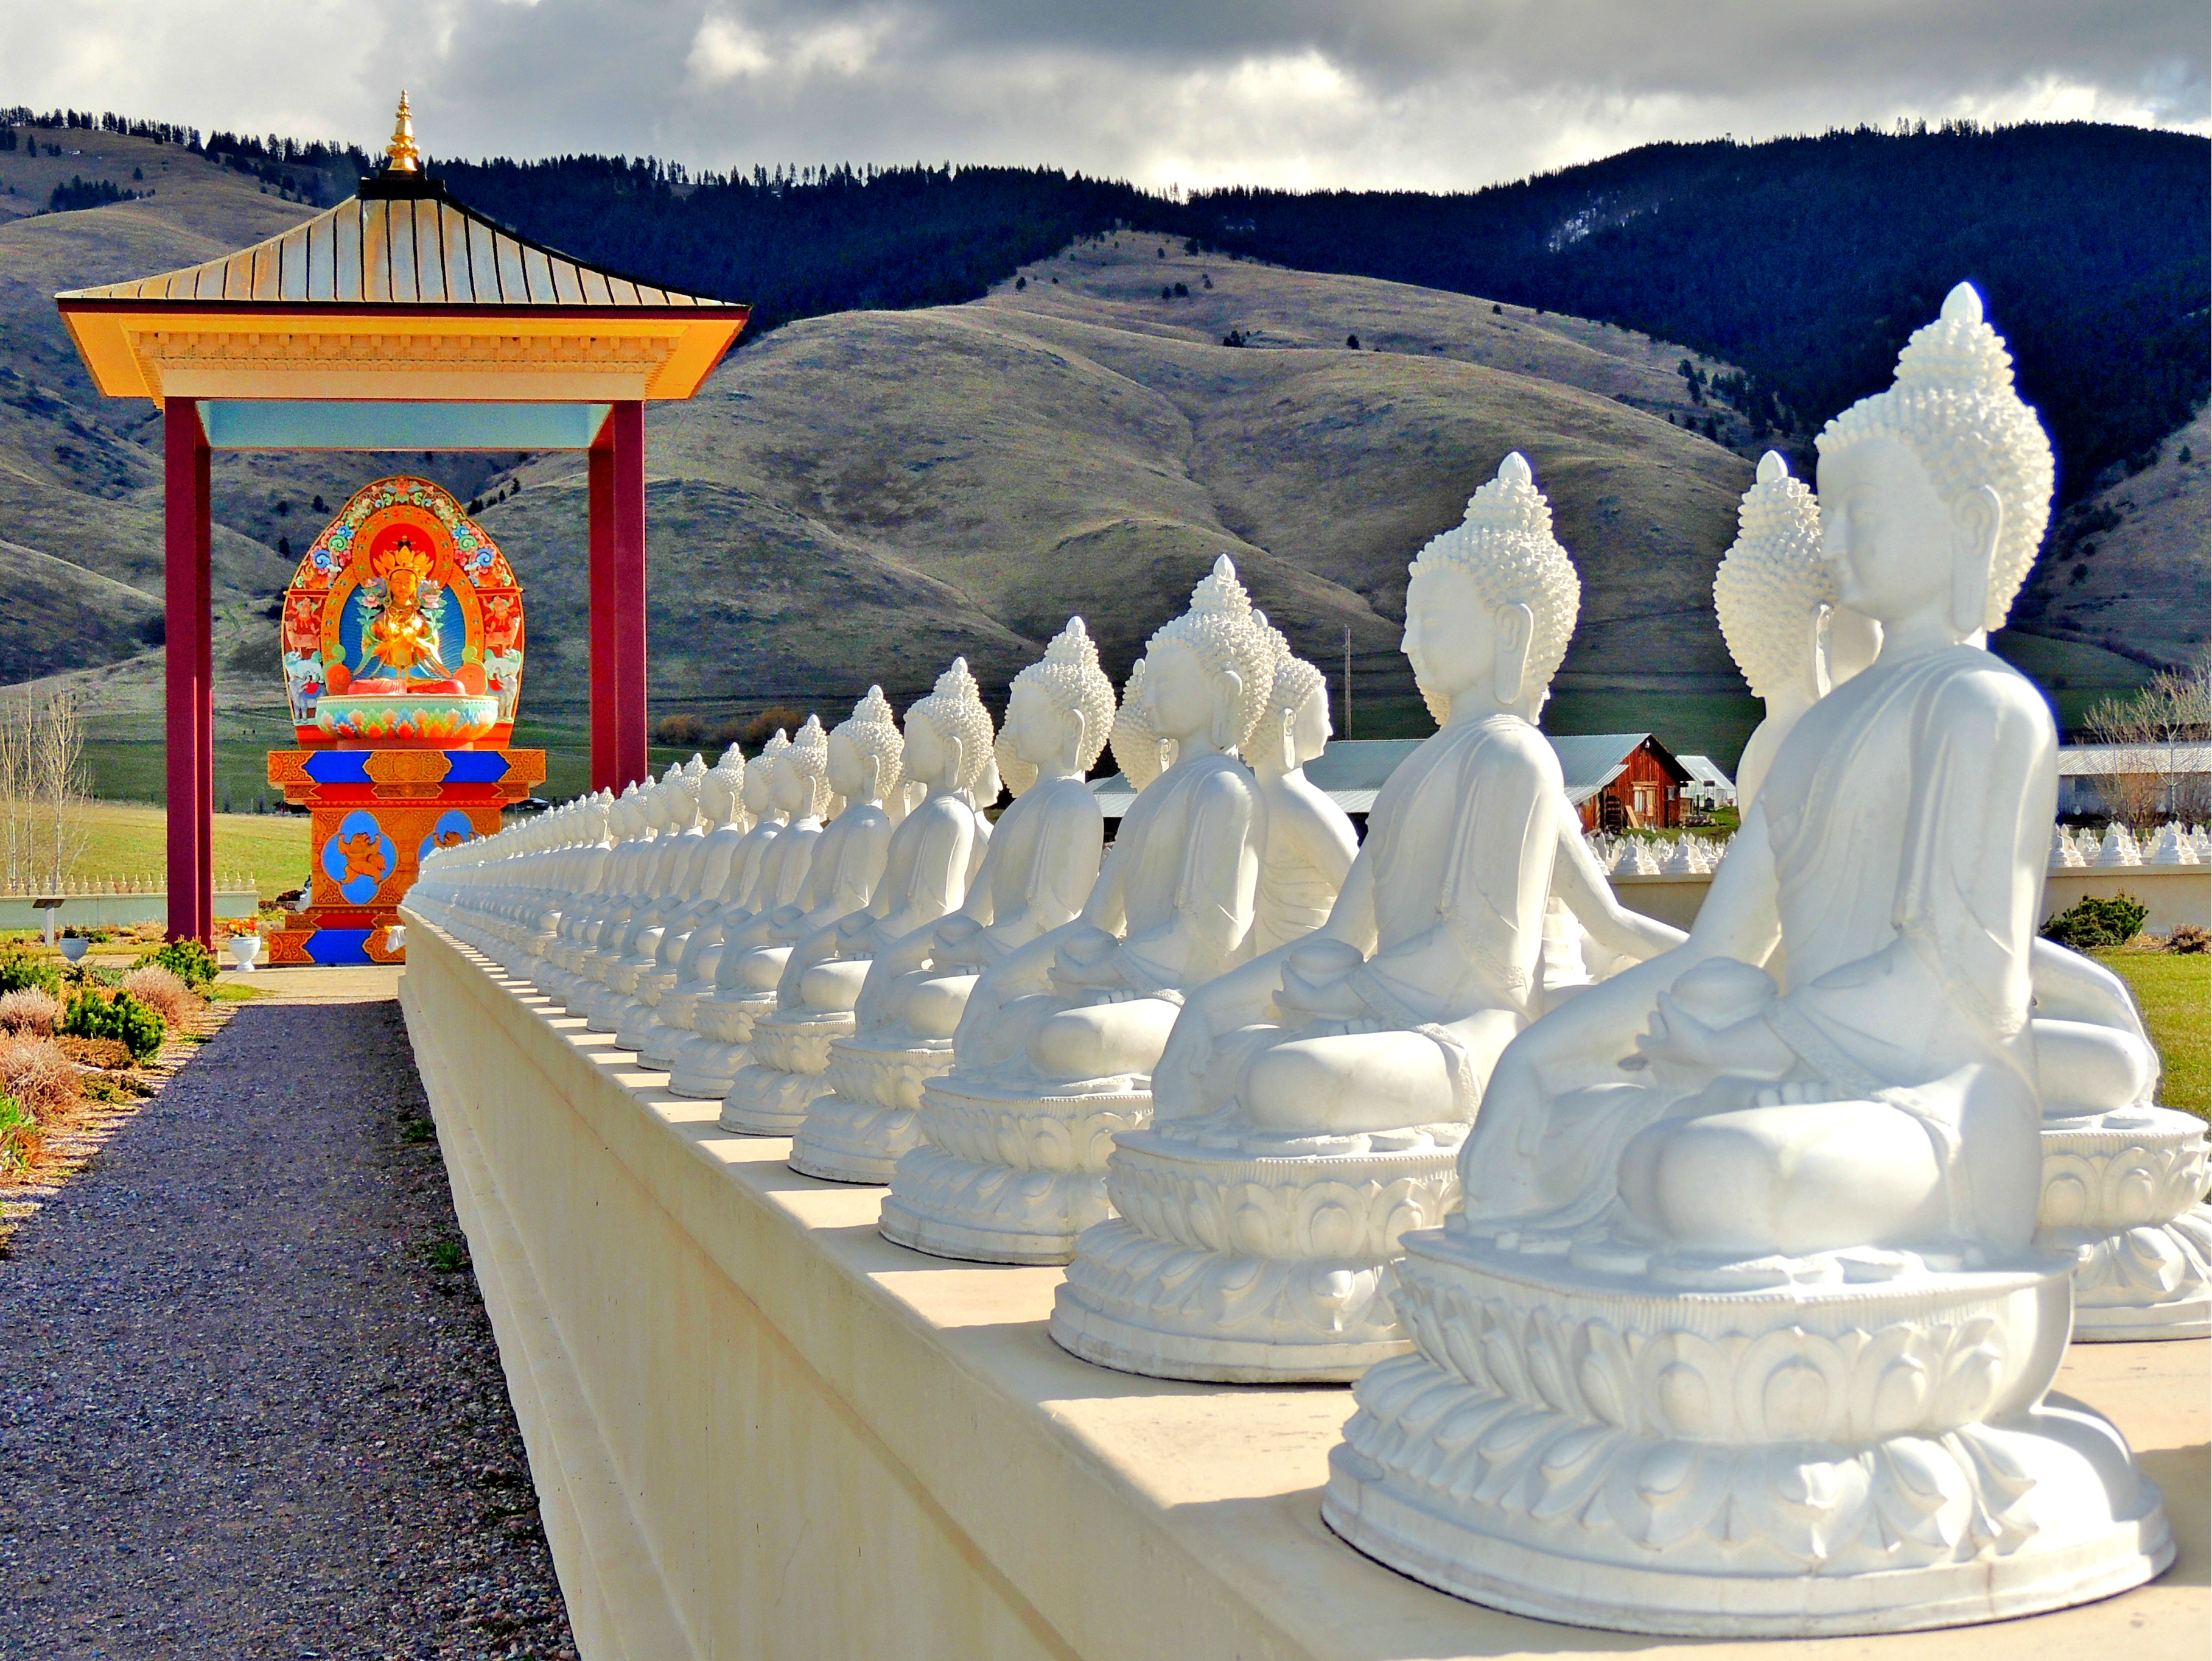 The garden of one thousand buddhas inland 360 Garden of one thousand buddhas